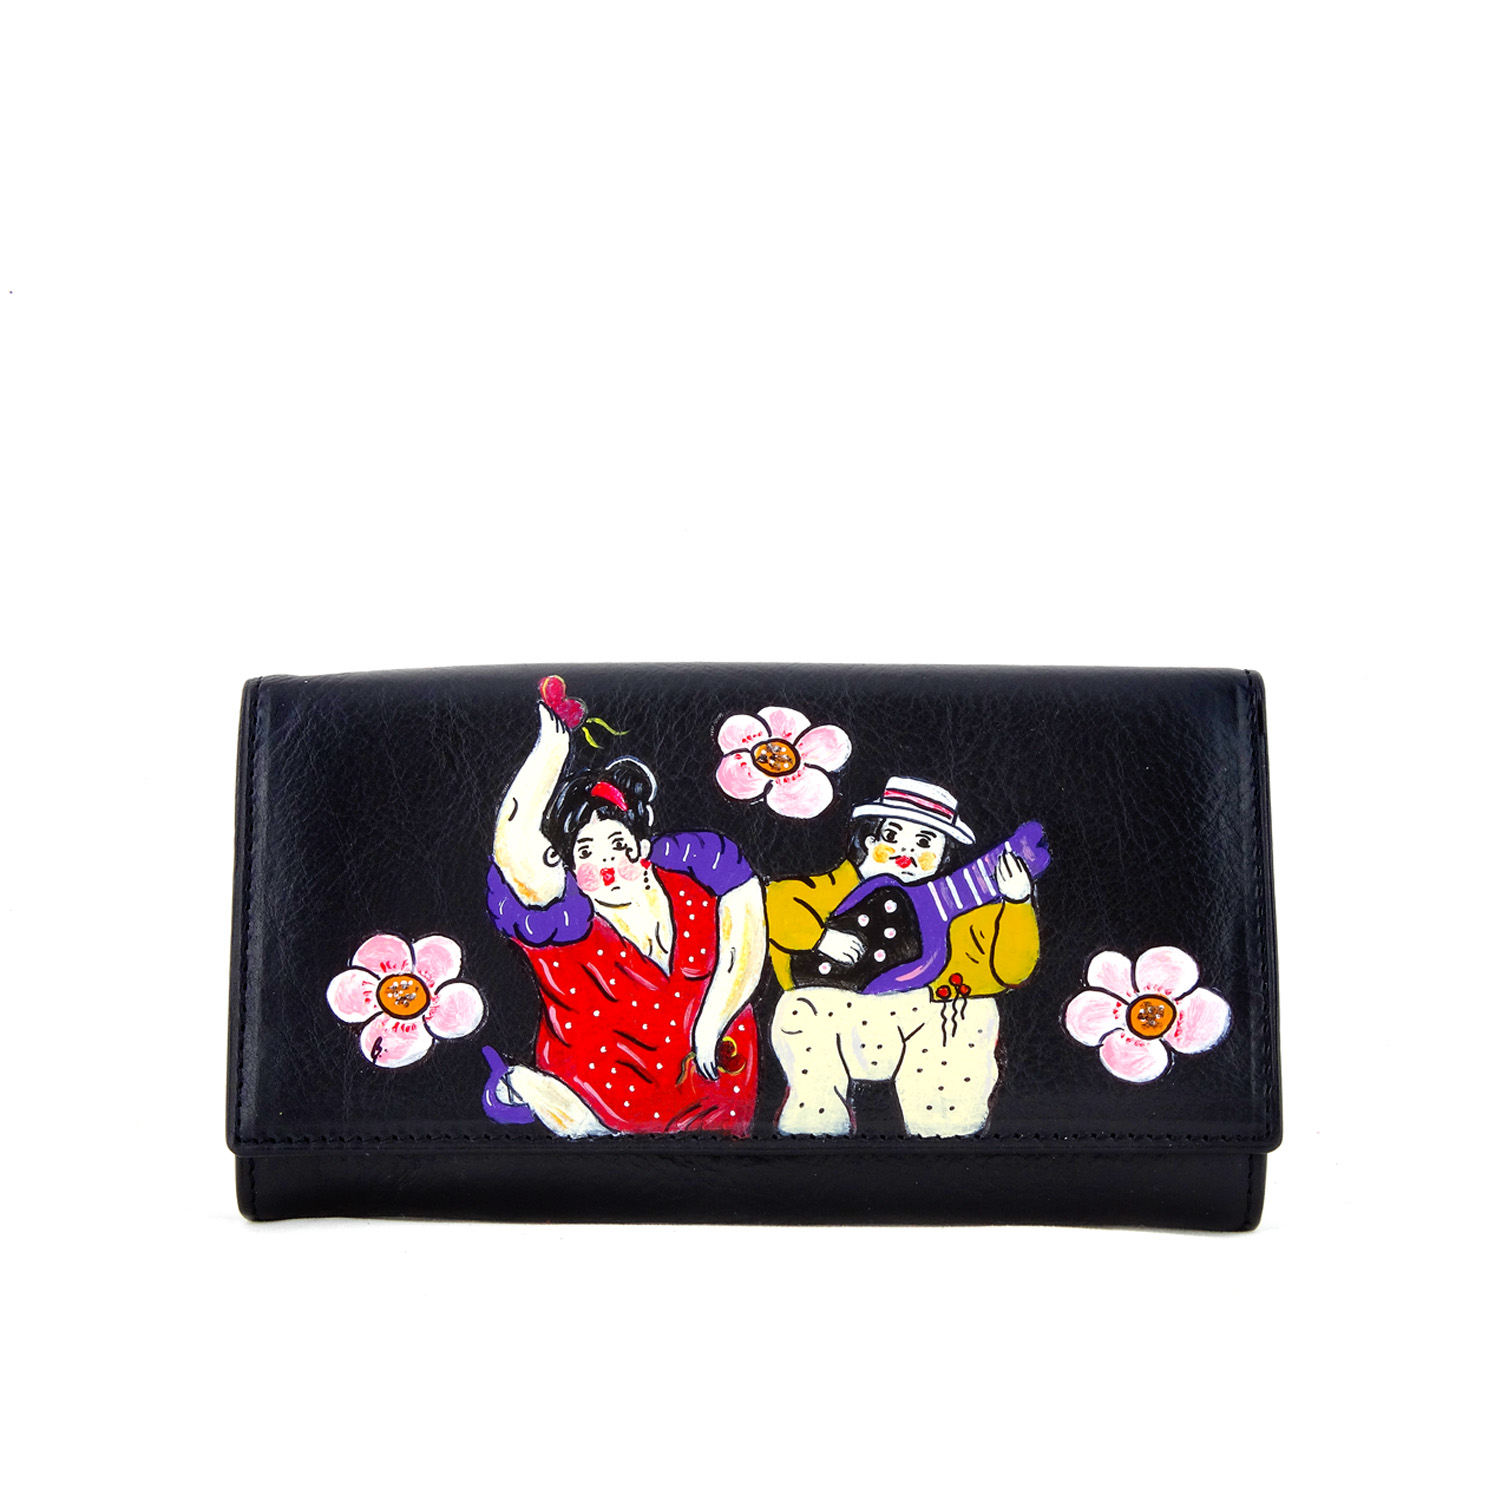 Hand painted wallet - The musicians by Botero